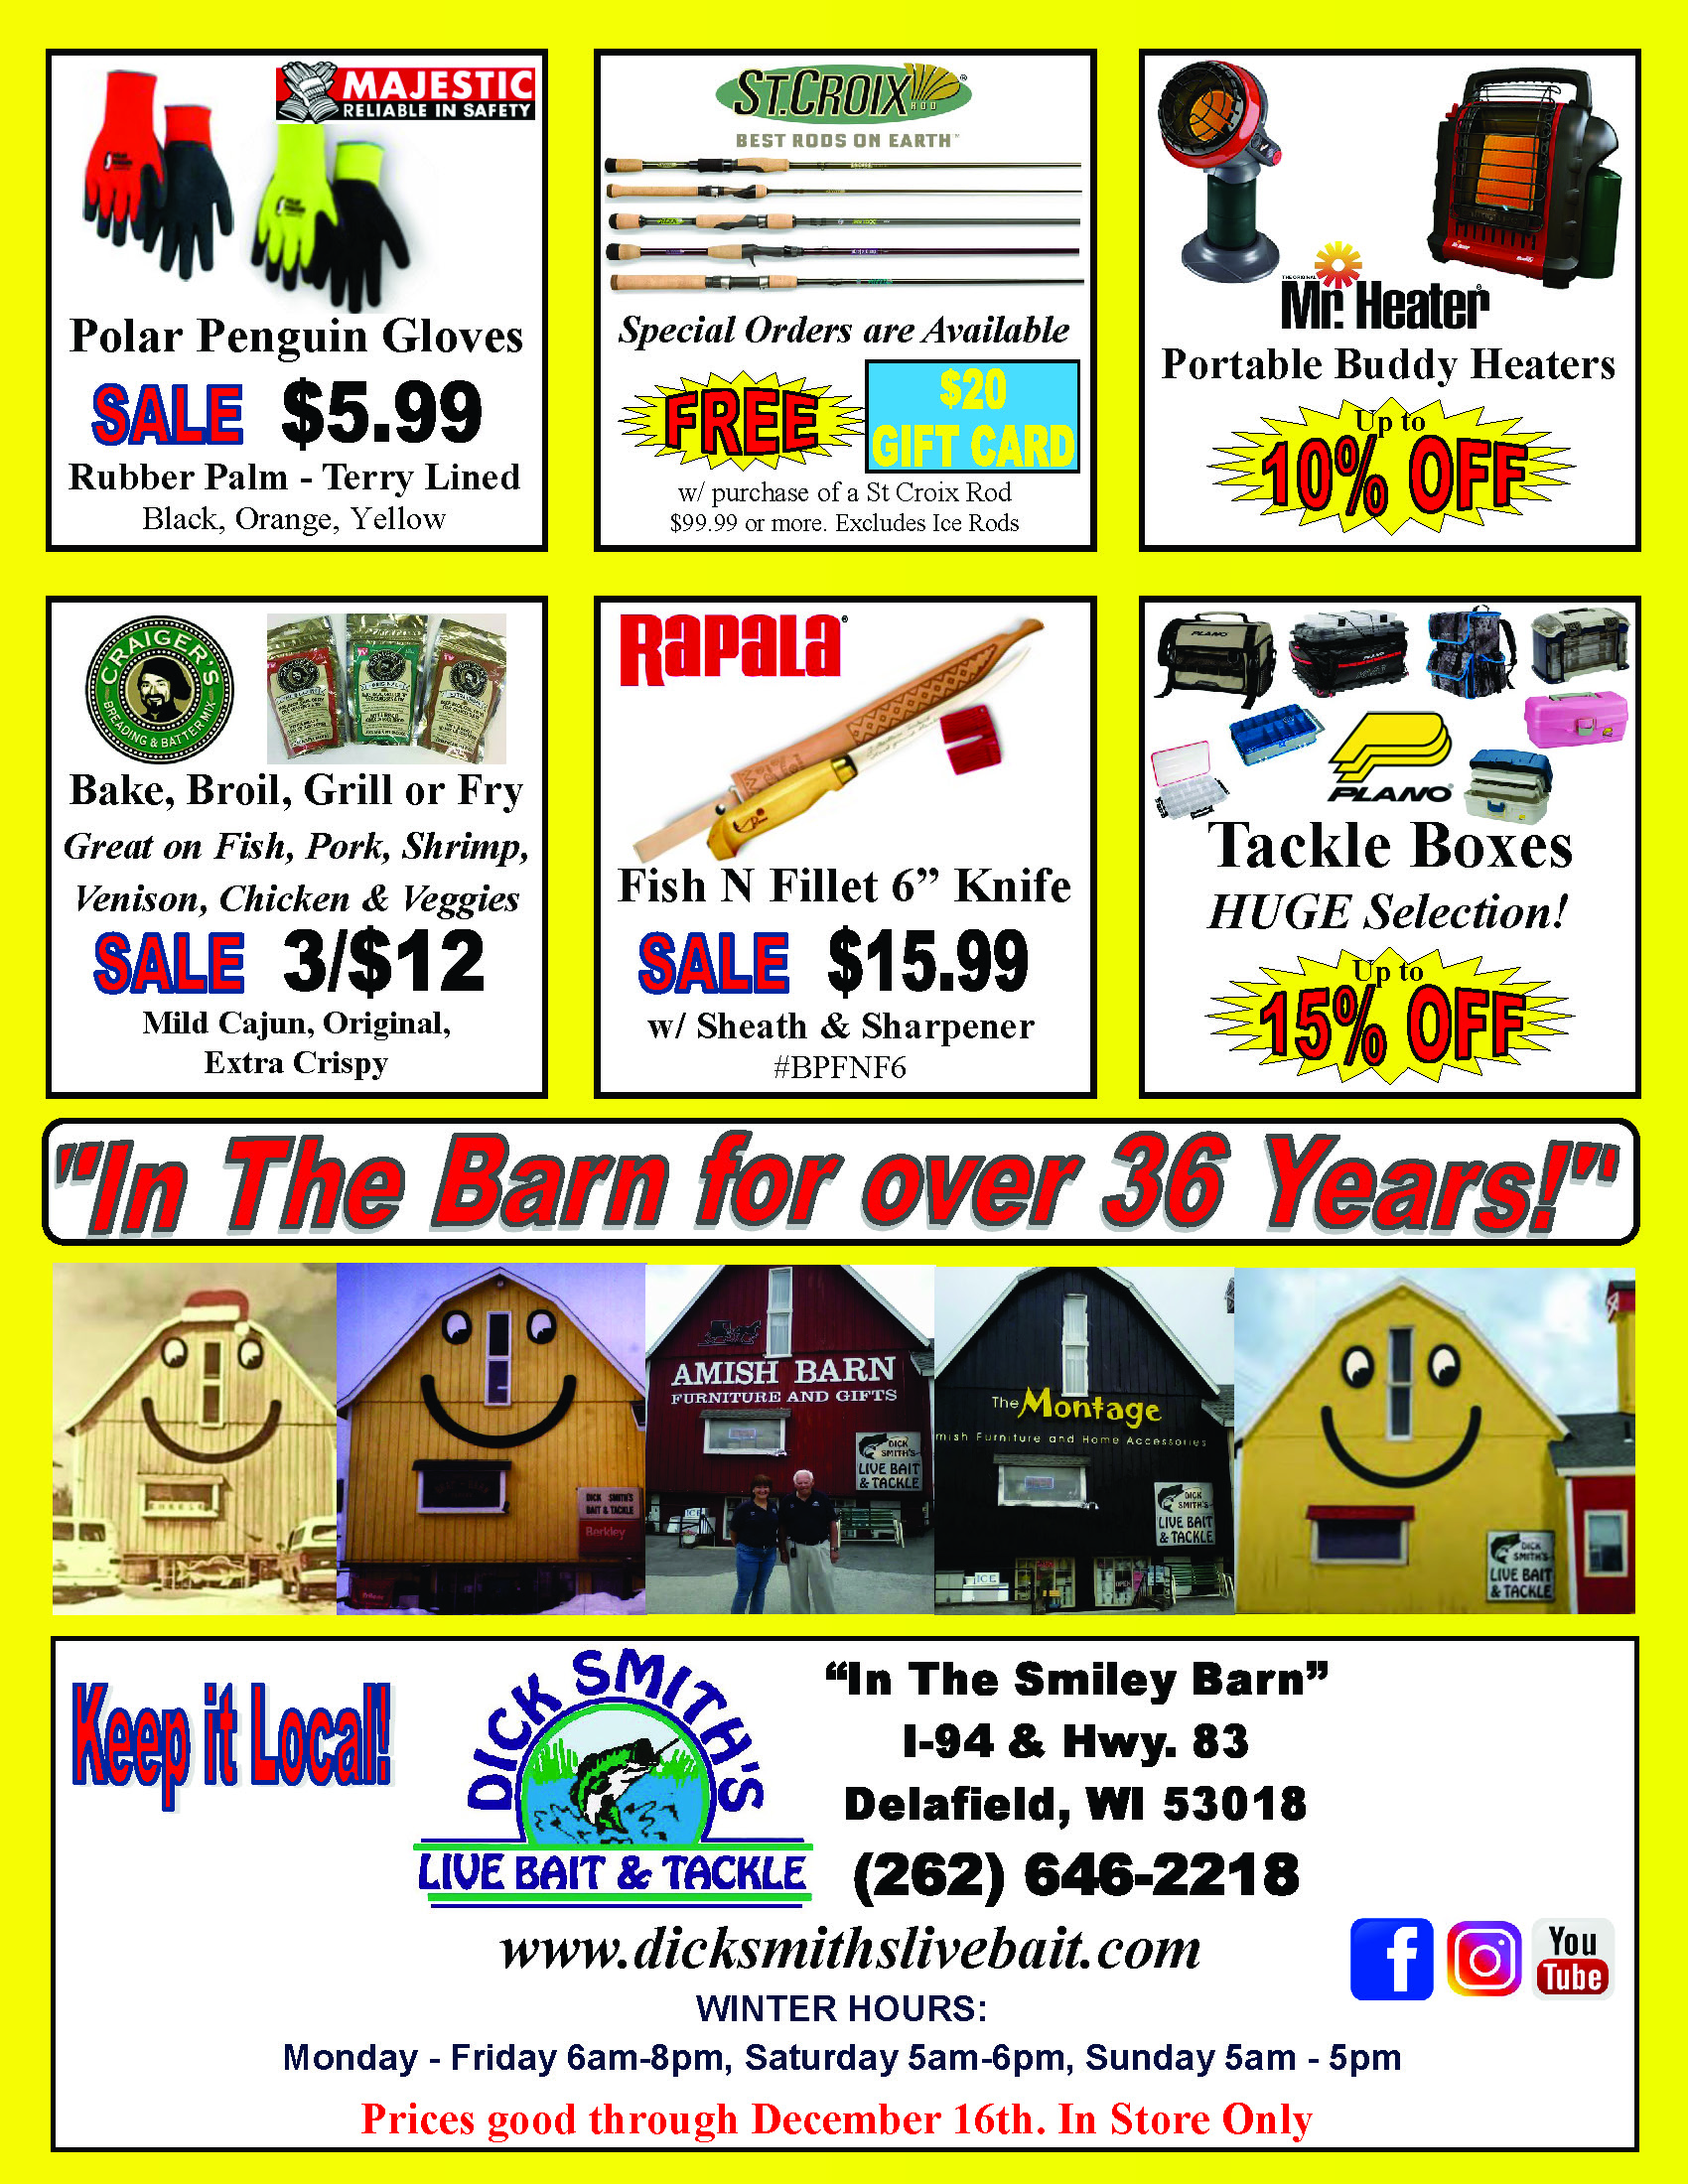 bf708f758cf Anniversary Flyer 36 new Page 1 - Dick Smith s Live Bait   Tackle